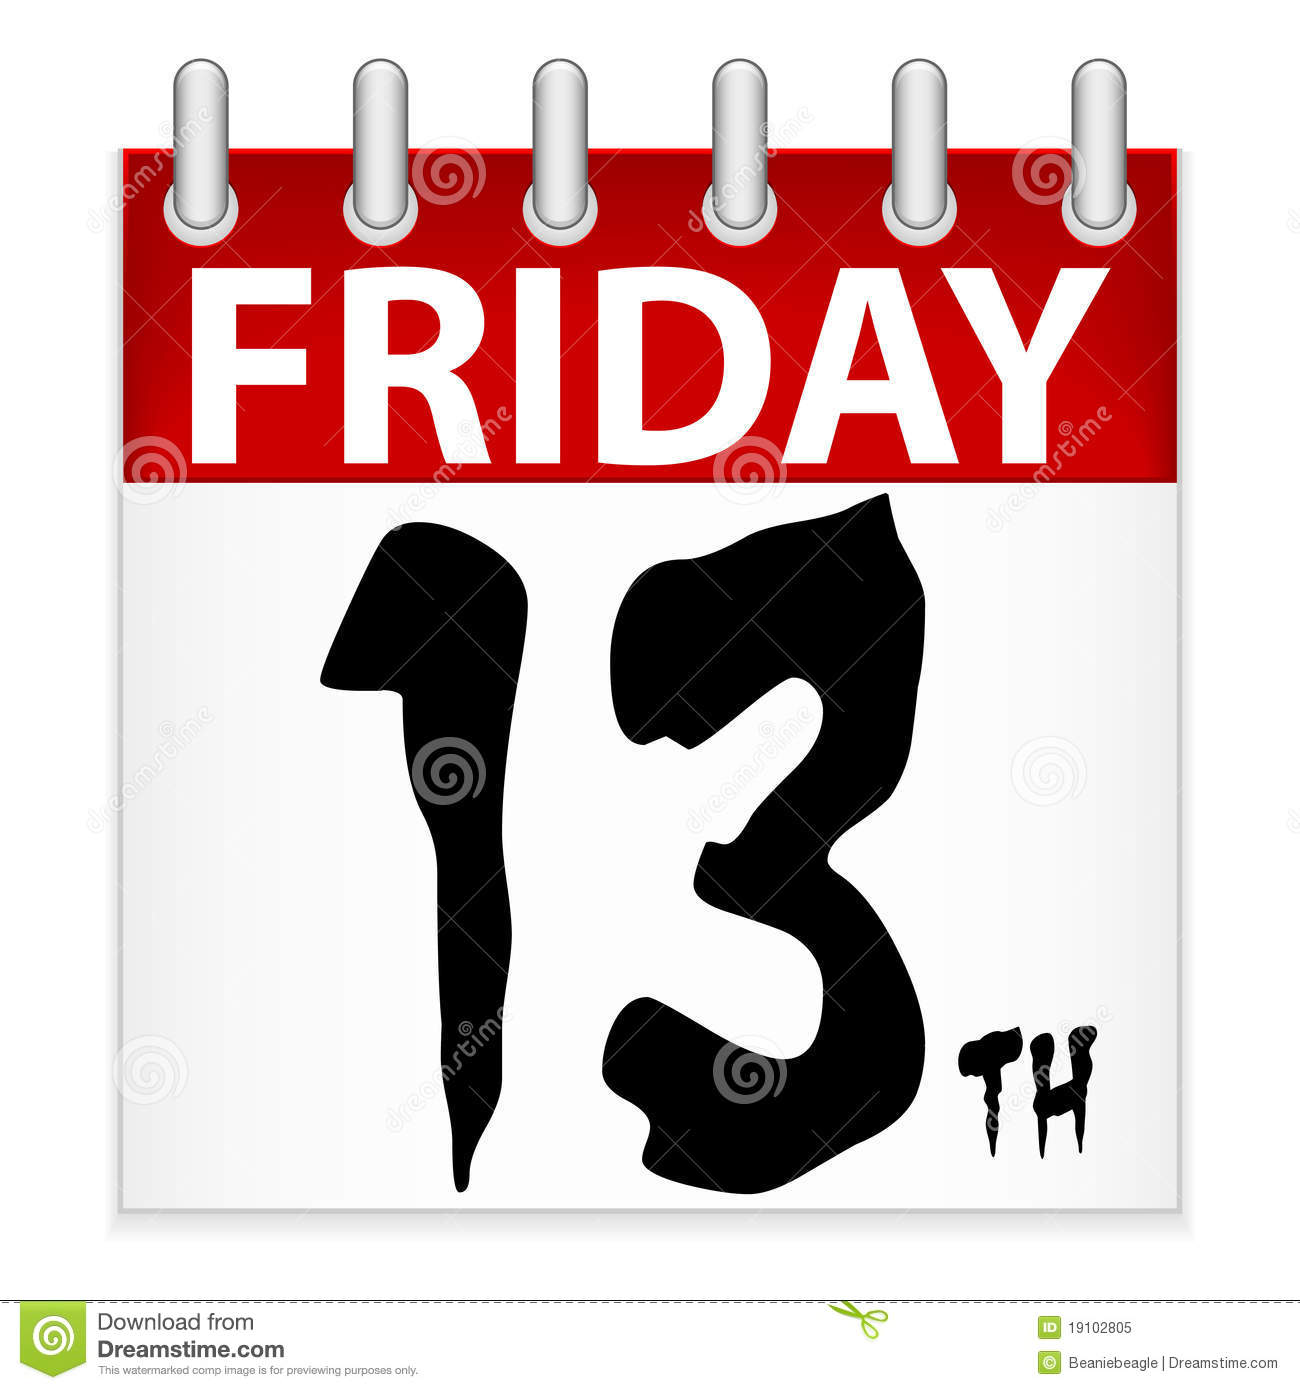 friday the 13th free